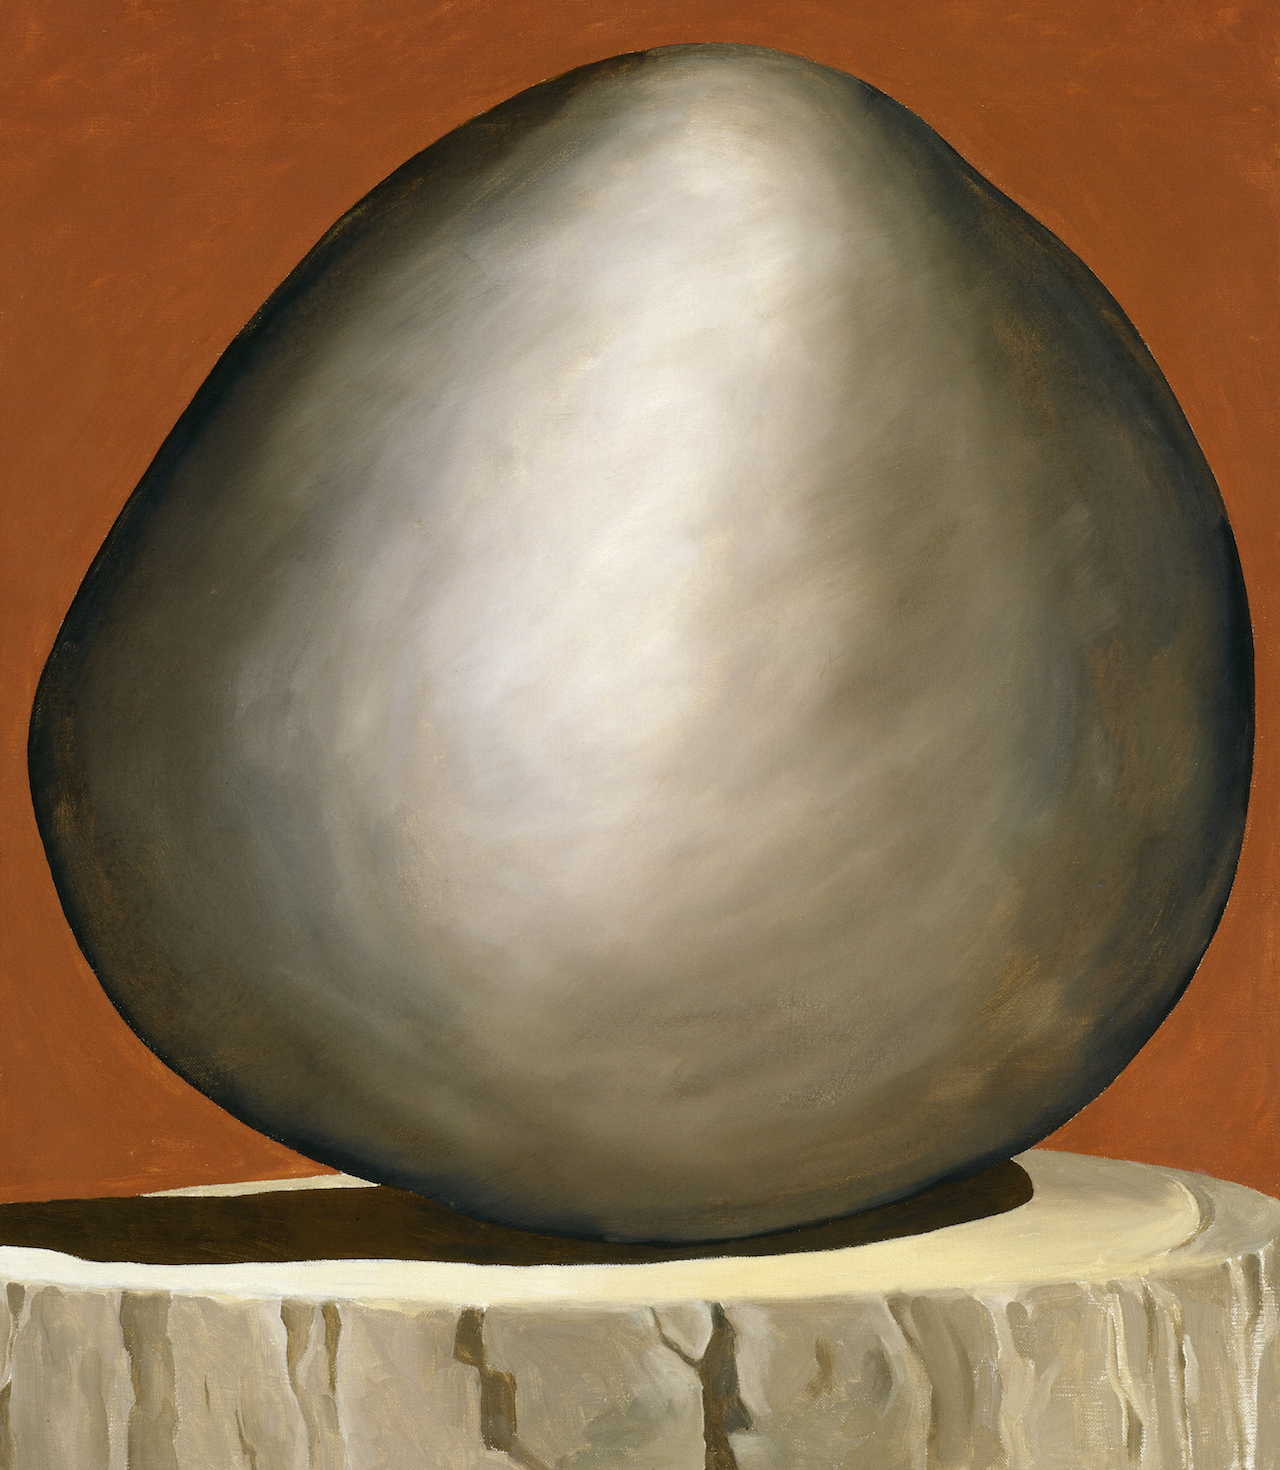 Georgia O'Keeffe, Black Rock on Red, 1971, oil on canvas, 30 x 26 inches